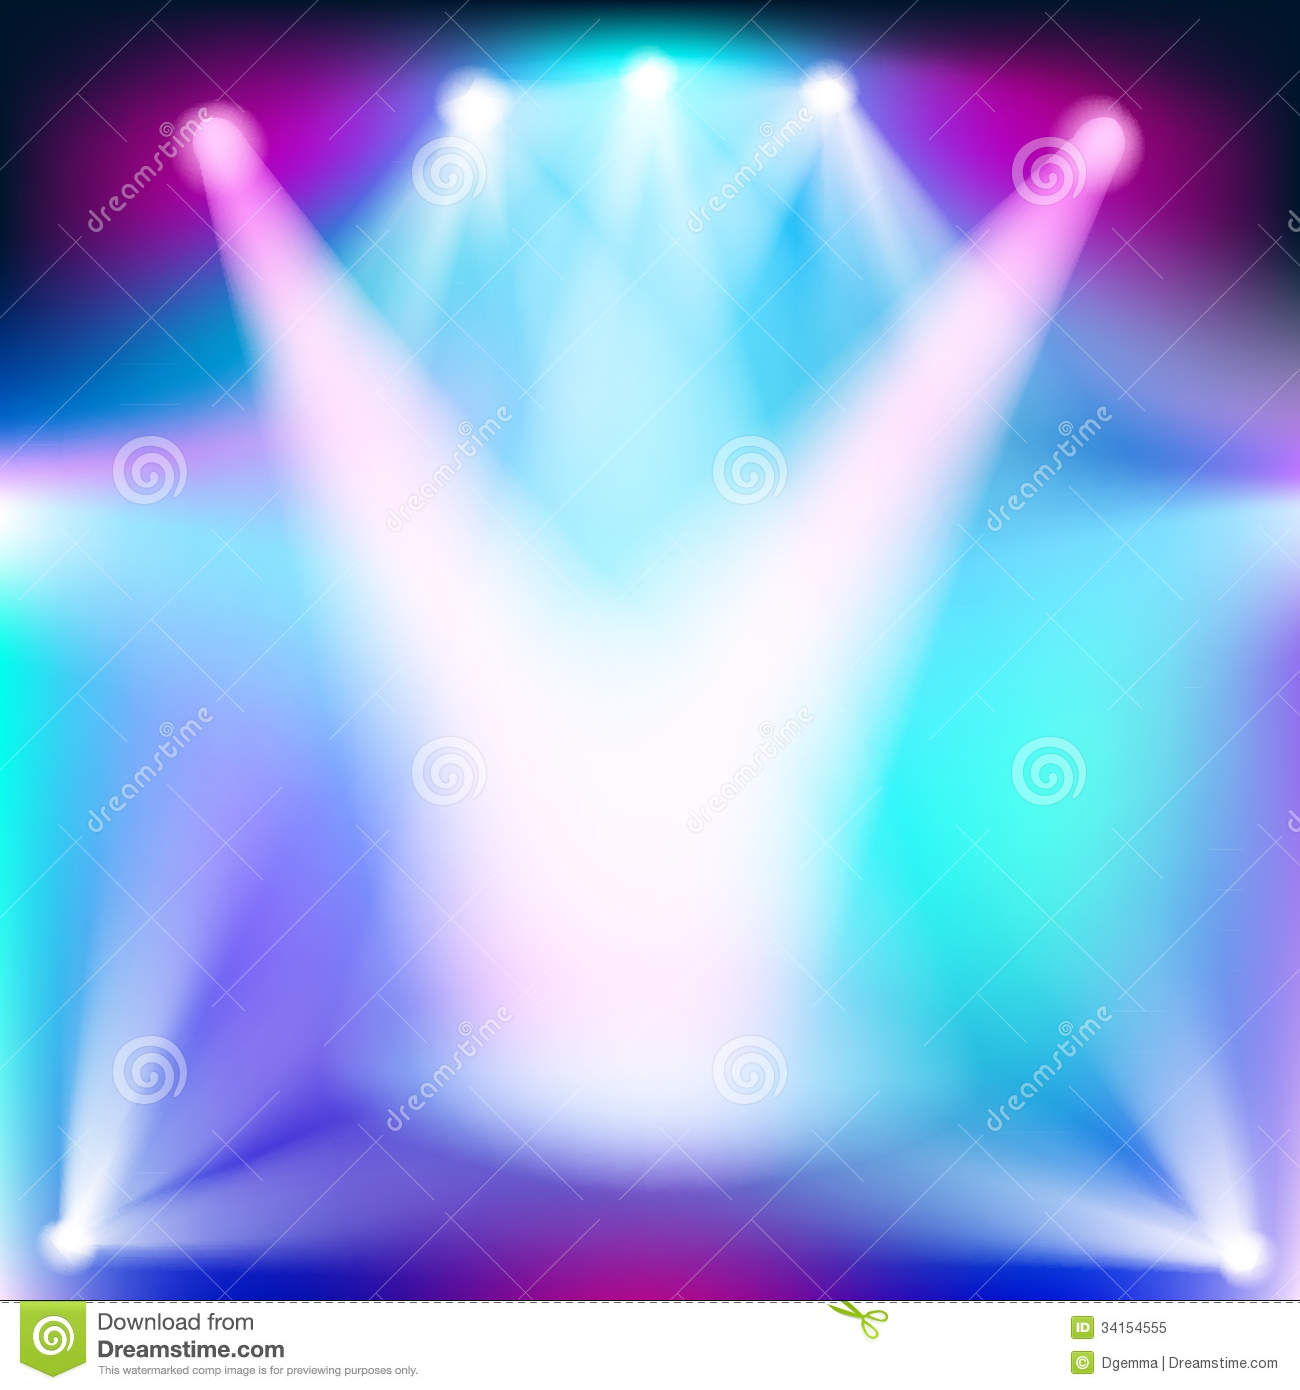 Background image effects - Background With Light Effects